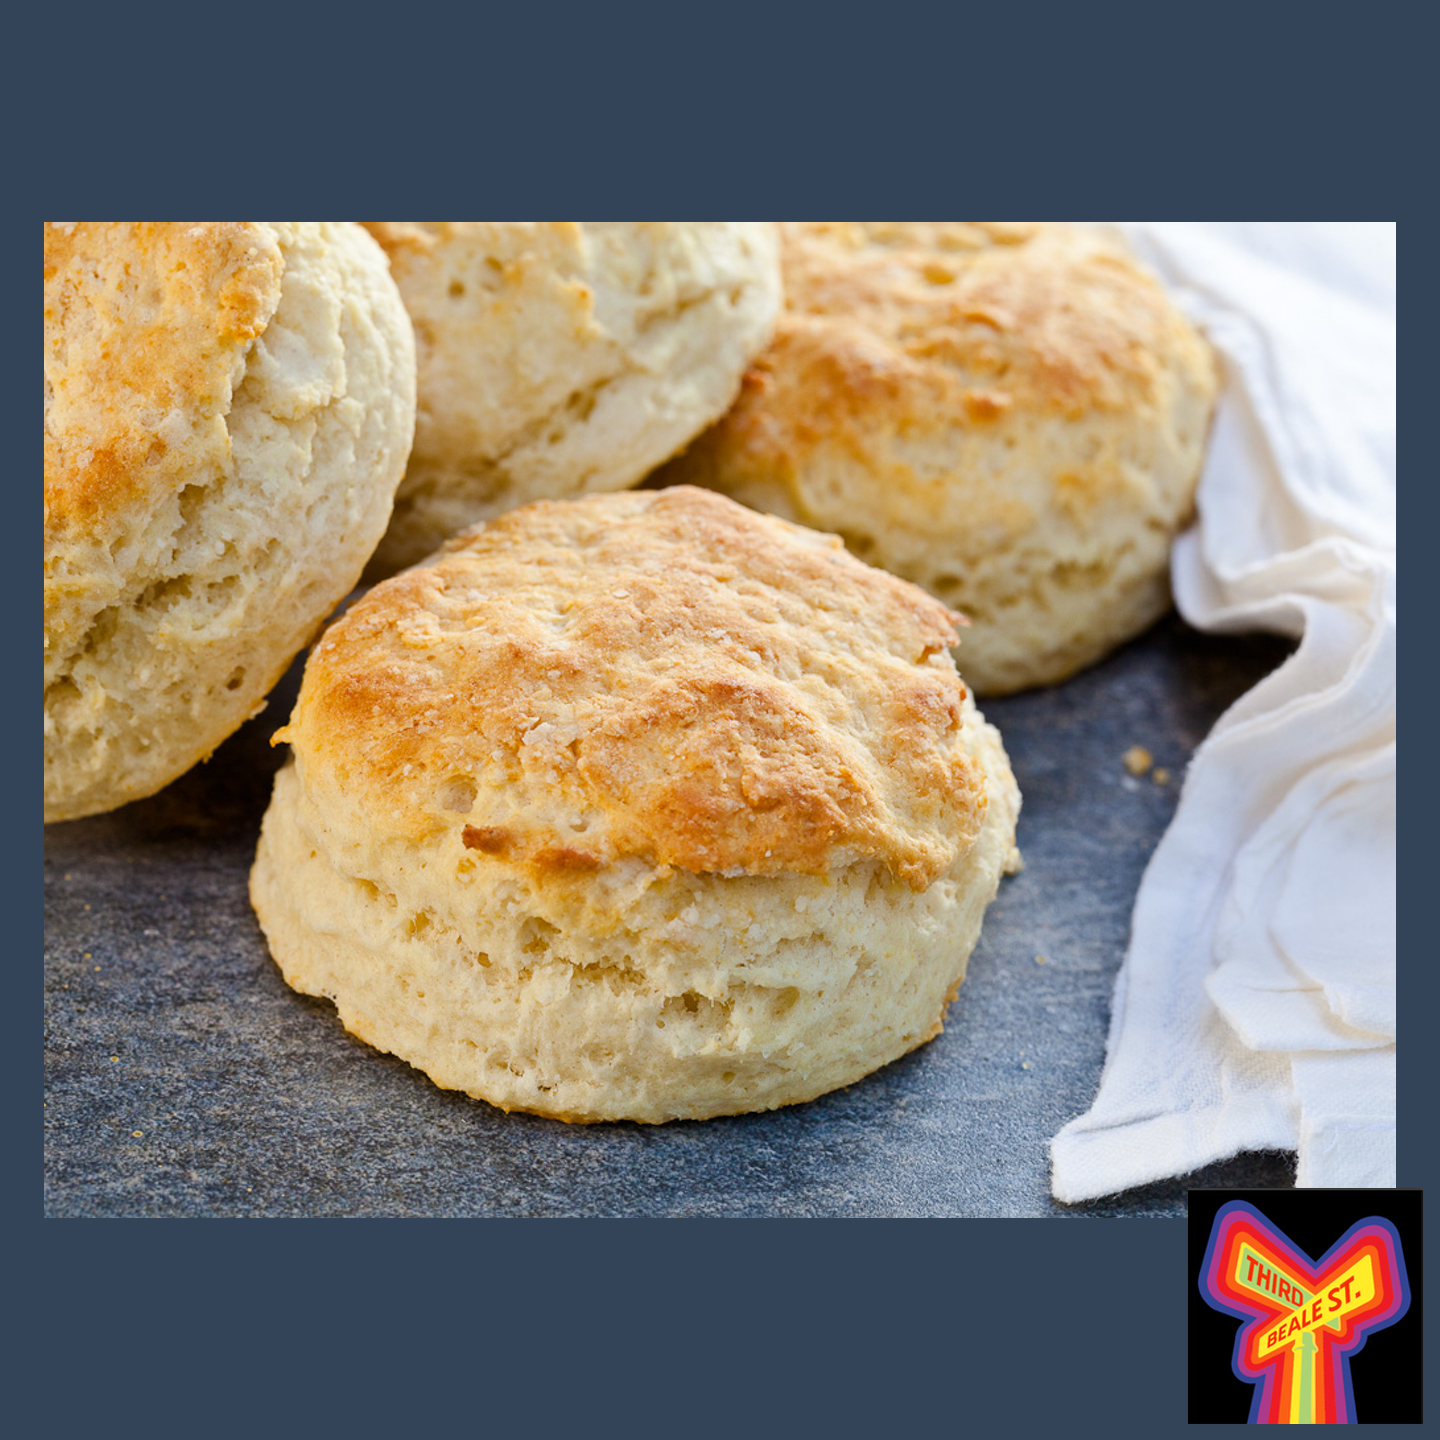 Caption: The perfect complement to any meal, Good Biscuits — just ask Memphis Minnie!